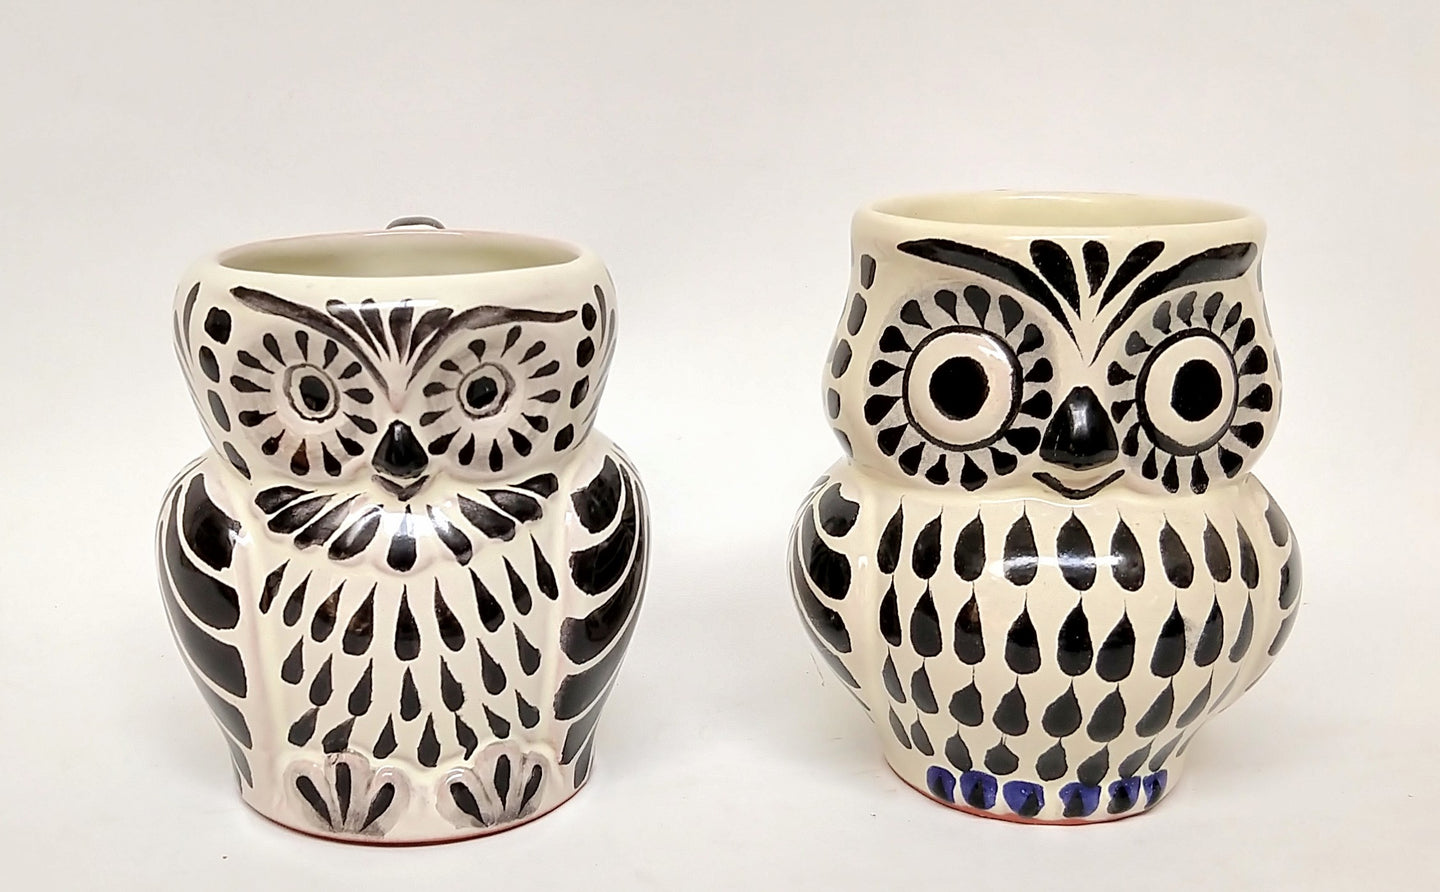 Owl Coffe Mug Set of 2 pieces 10.5 Oz Black and White